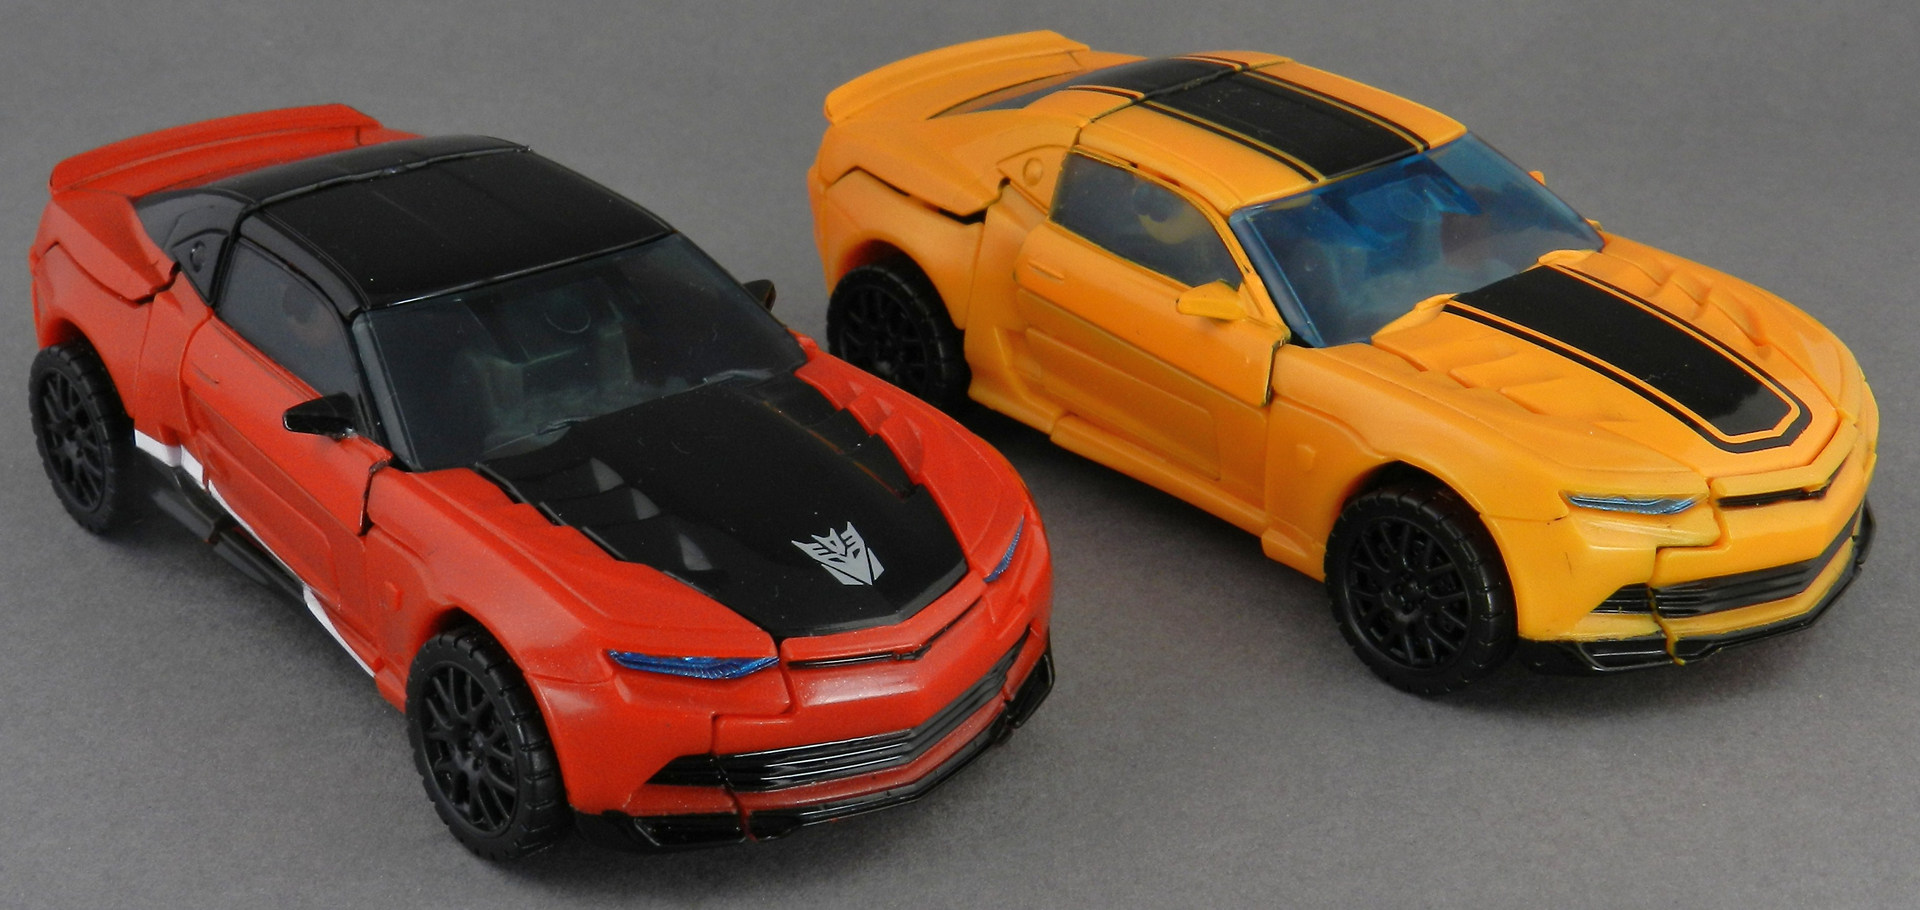 Stinger-with-AoE-Bumblebee-Car-1 TFW's Age of Extinction Stinger ...